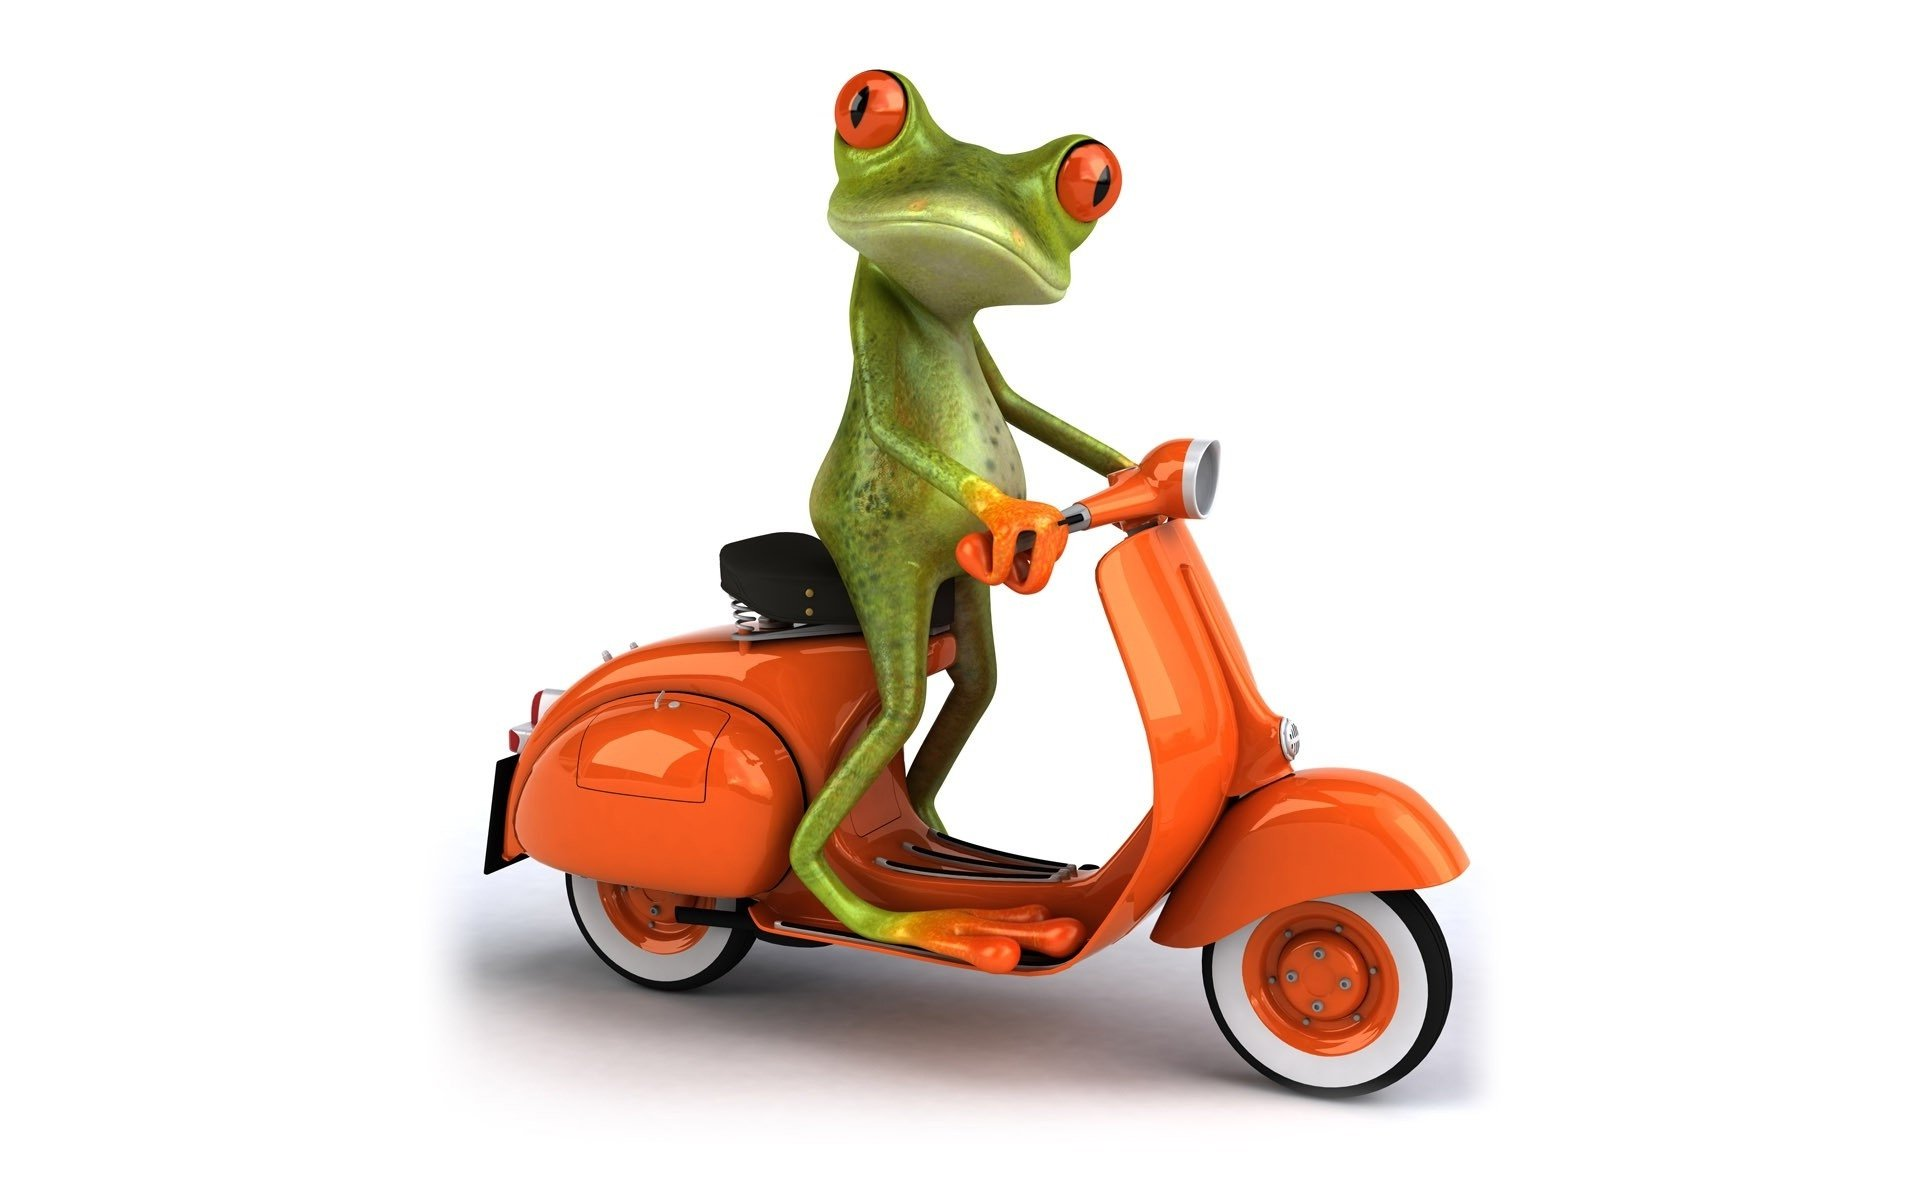 Cartoon frog wallpaper wallpapersafari - Frog cartoon wallpaper ...